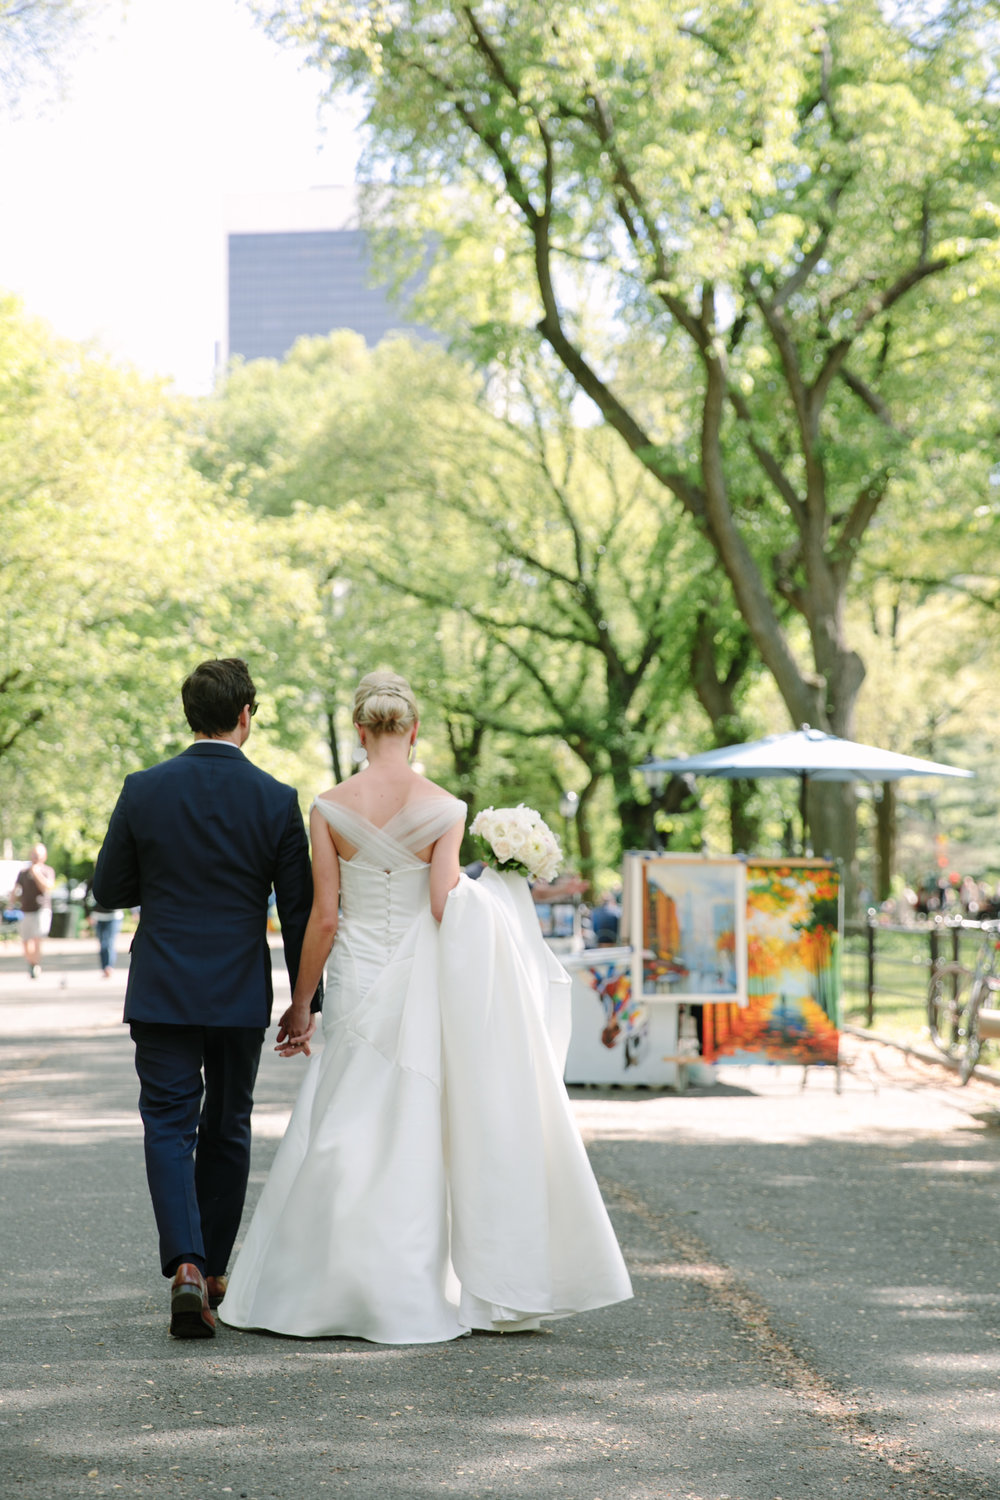 Intimate-NYC_wedding_ by Tanya Isaeva-121.jpg